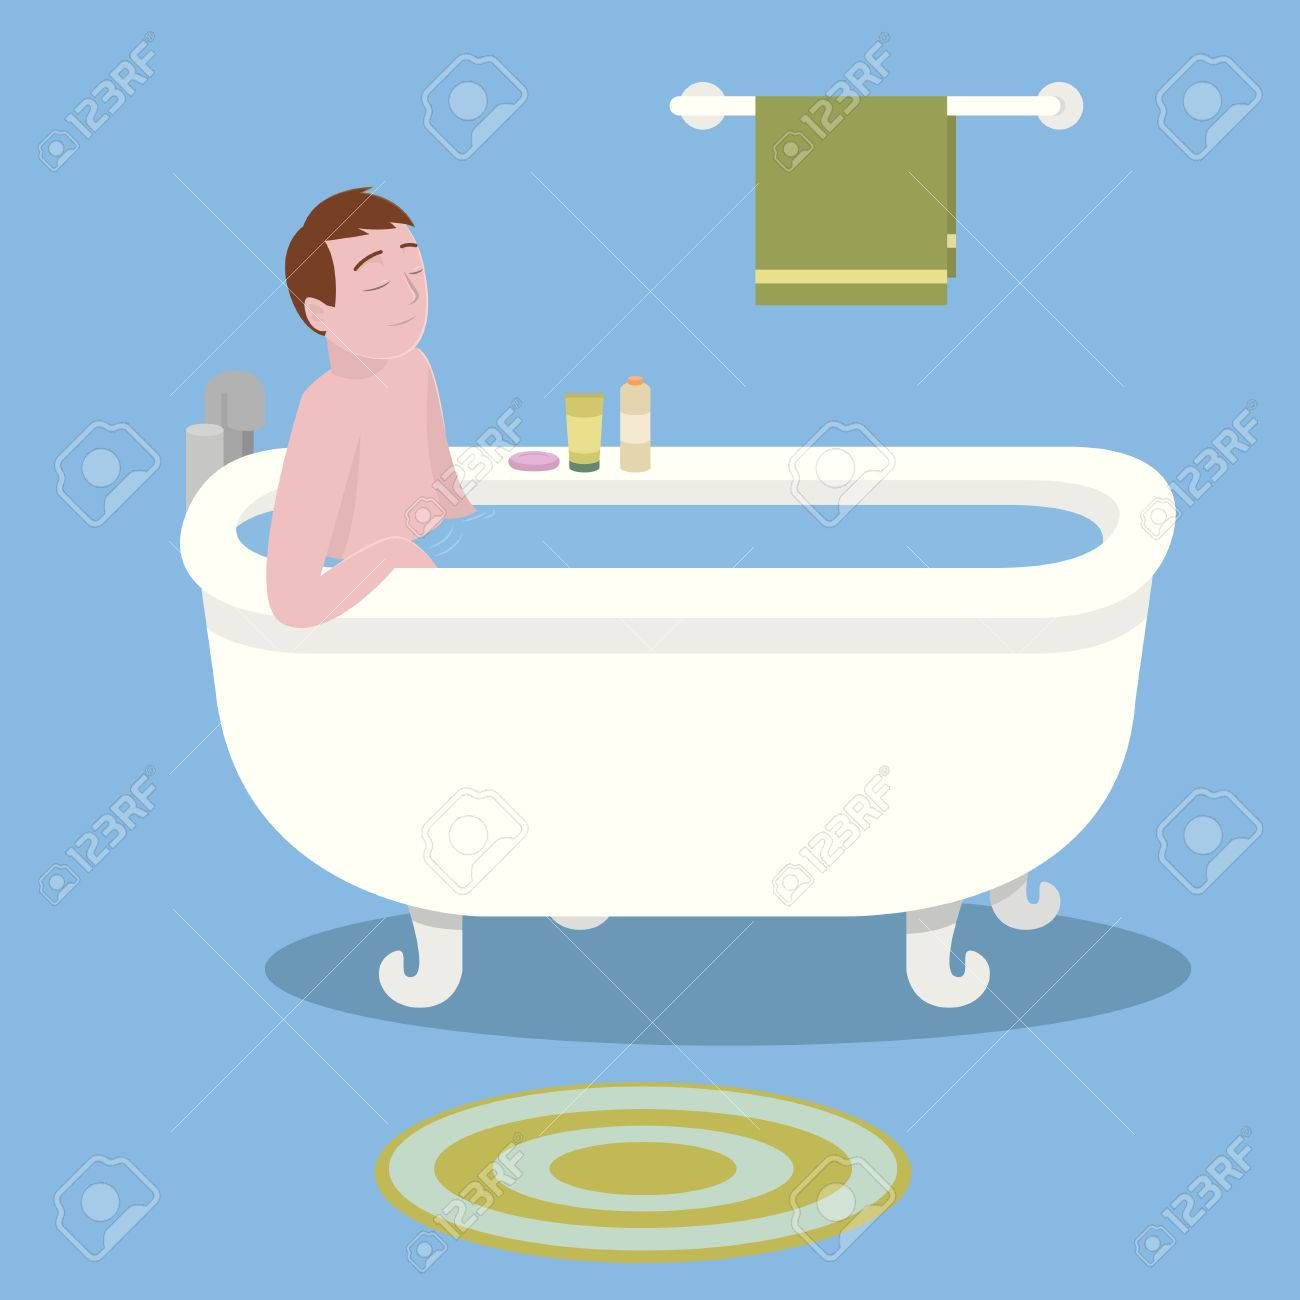 Man In Bathtub Royalty Free Cliparts, Vectors, And Stock ...